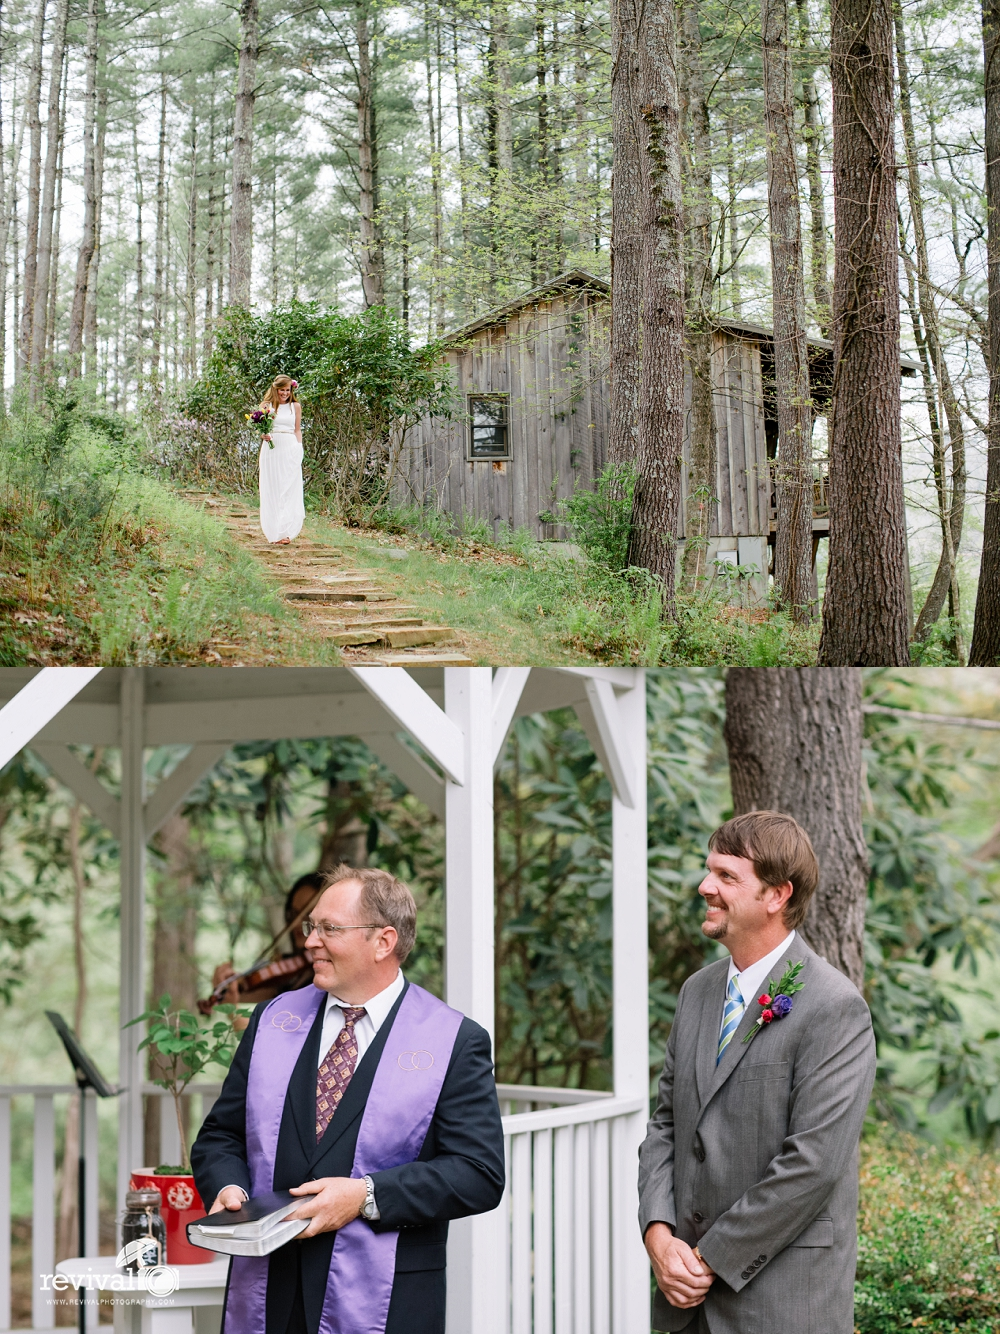 Alison + Gregory: A Heartfelt Destination Elopement at The Mast Farm Inn, Valle Crucis, NC www.revivalphotography.com